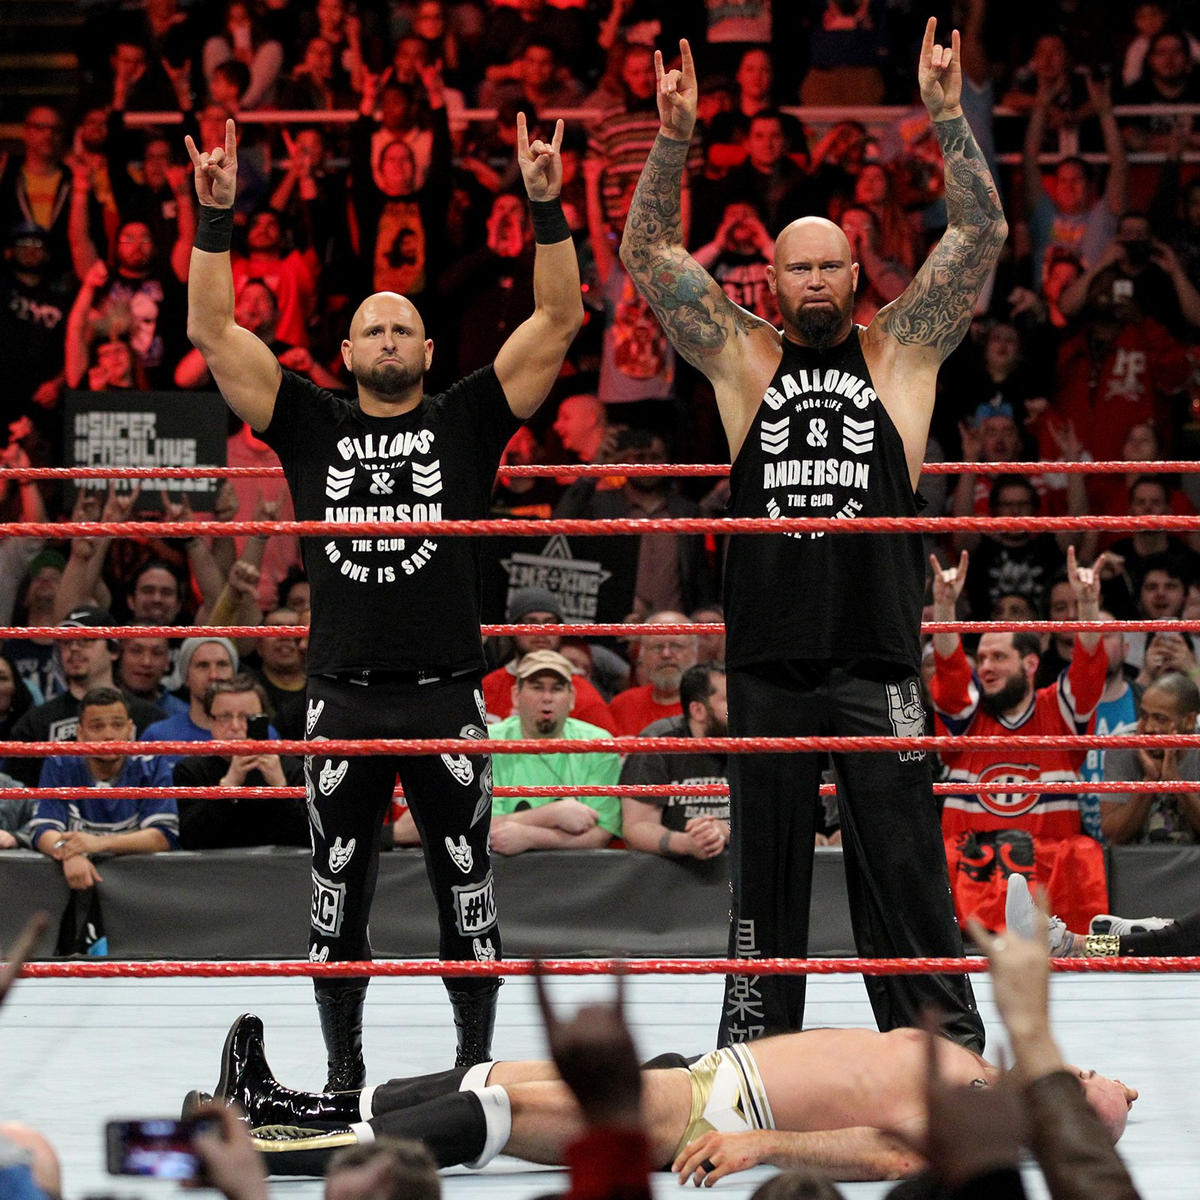 Anderson & Gallows stand tall after their sneak attack, but Raw General Manager Mick Foley would inform the duo that they will be defending the Raw Tag Team Championships in a Triple Threat Match at WrestleMania.